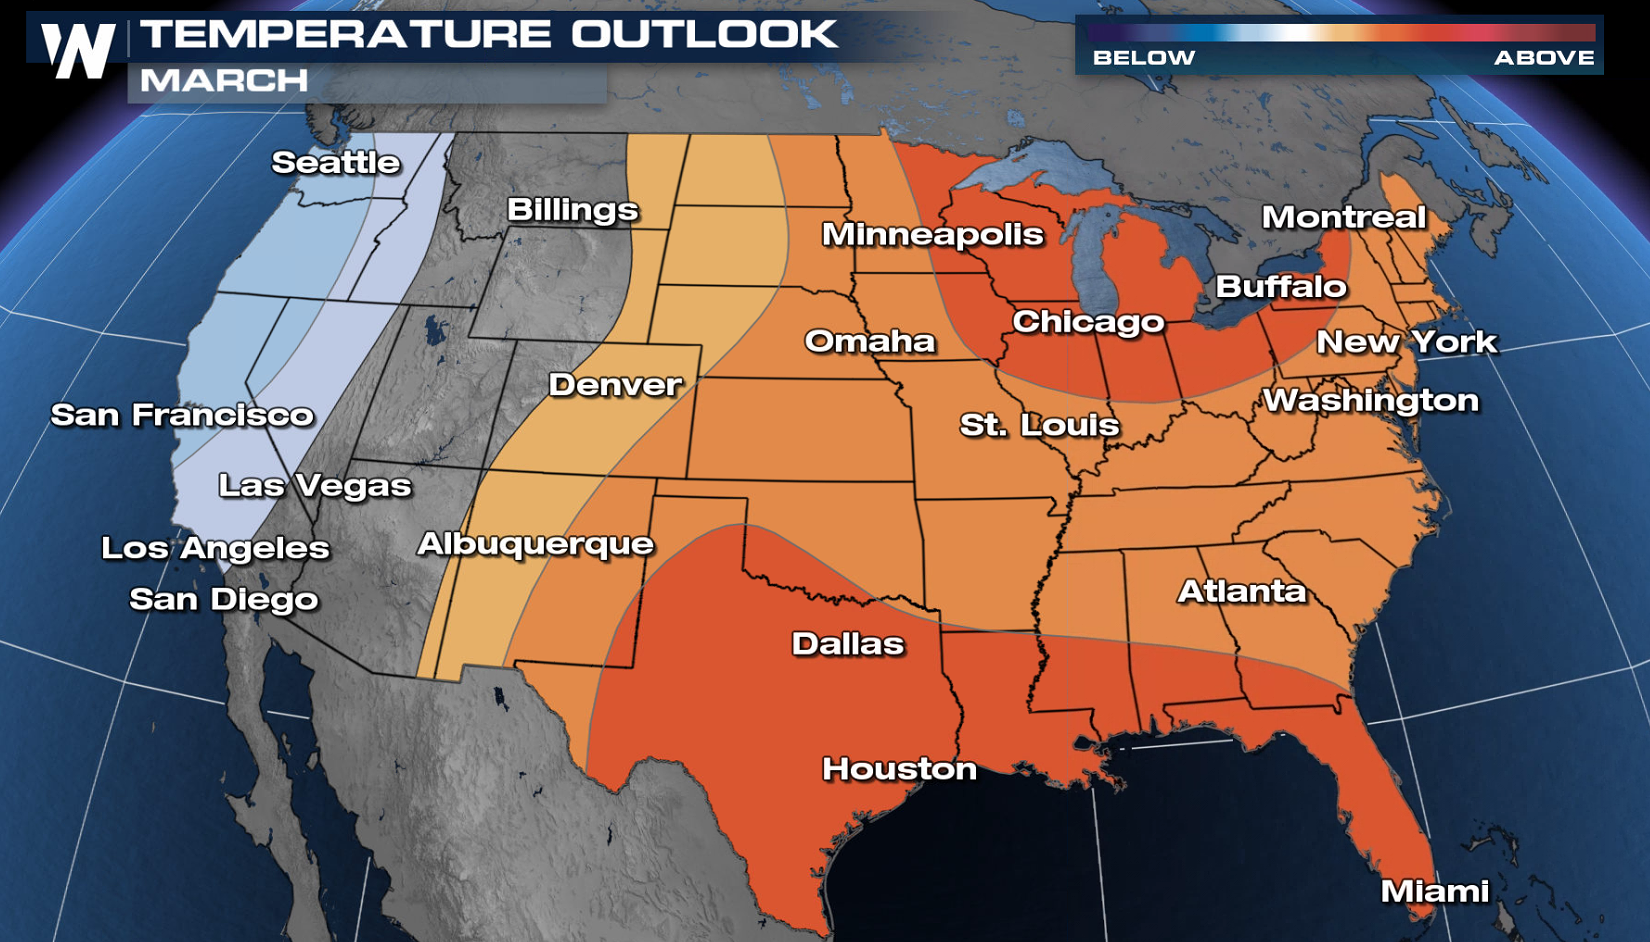 Updated March Outlook: A Warm Start to Meteorological Spring